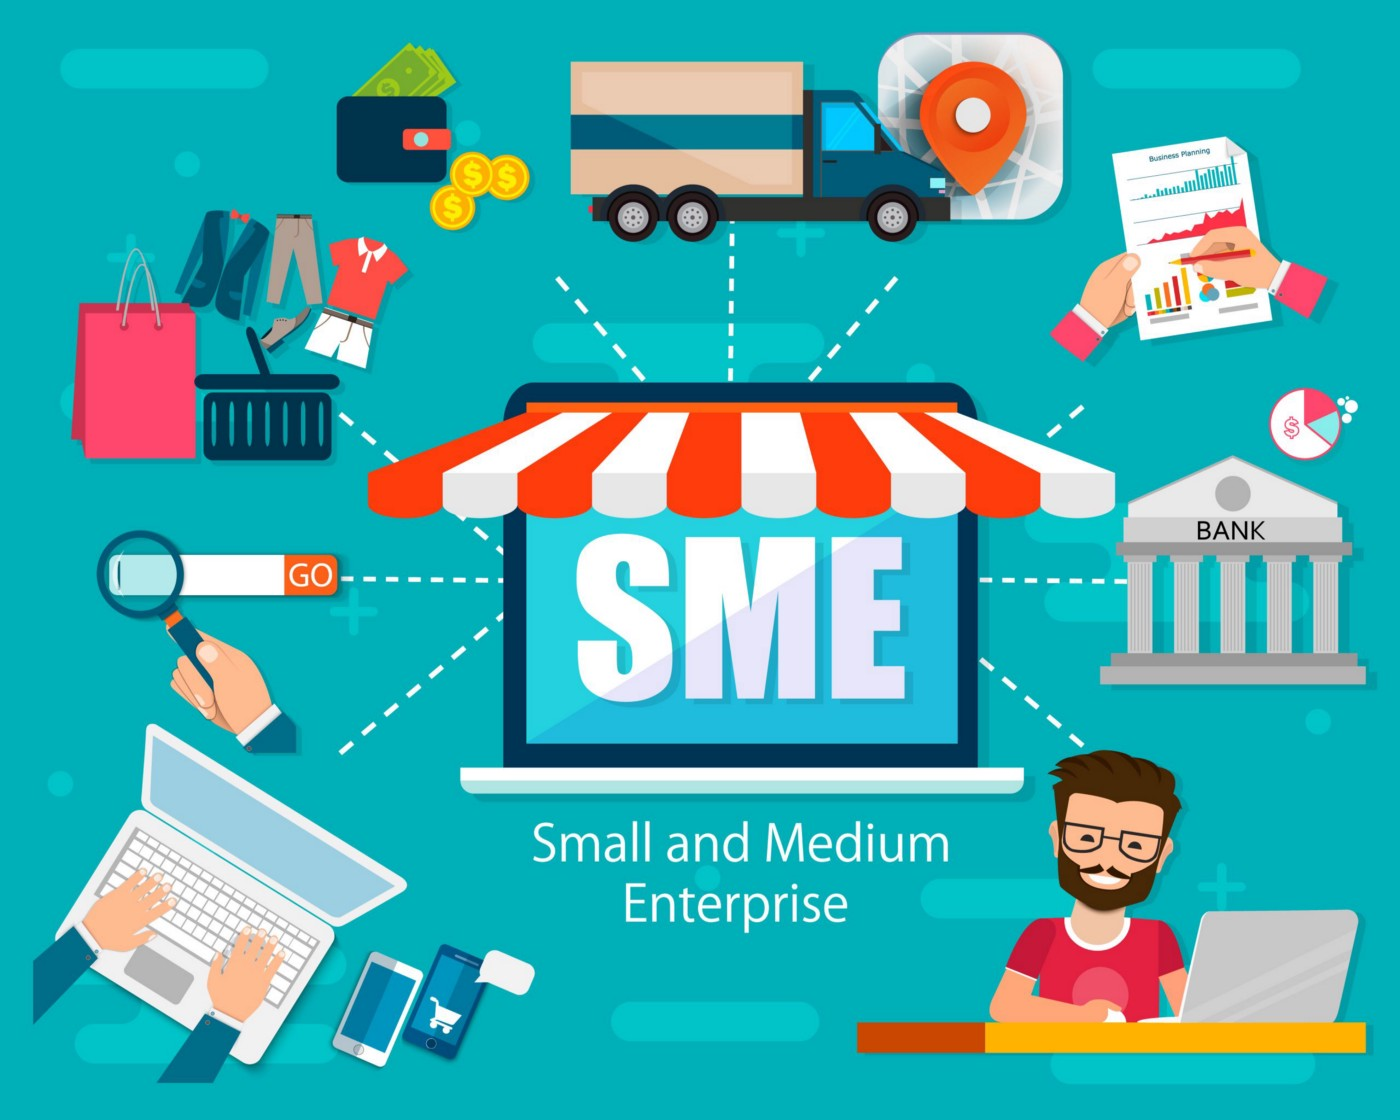 It's time to walk the talk on SMEs